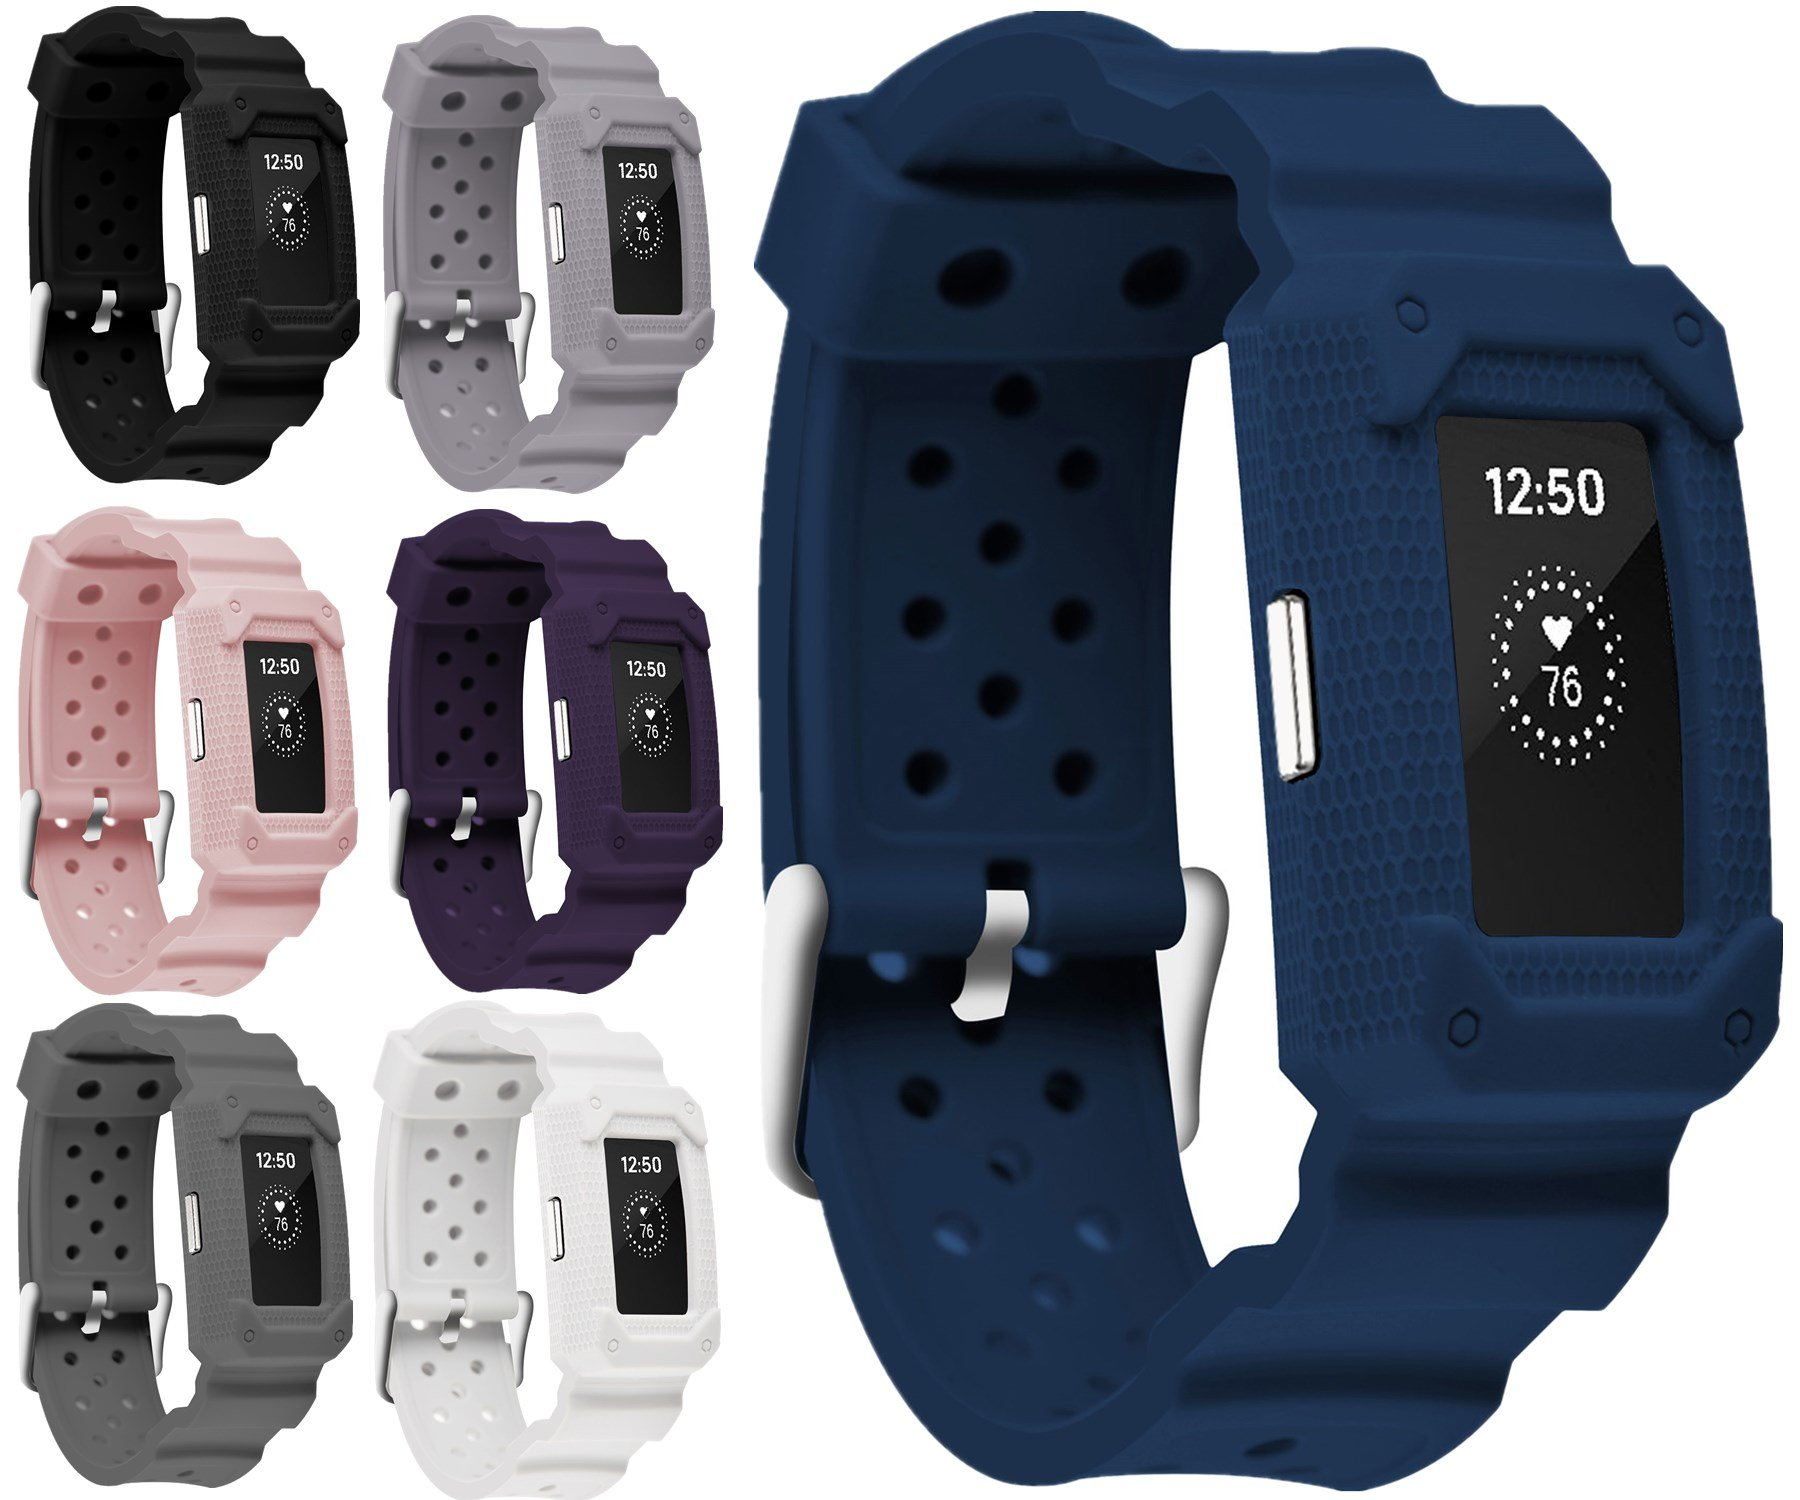 Moretek for Charge2 band Tough Hard Shock-Resistant Hybrid Cover Dual Layer Armor Defender Case wrist strap for Fitbit Charge 2 Replacement bands (Blue)